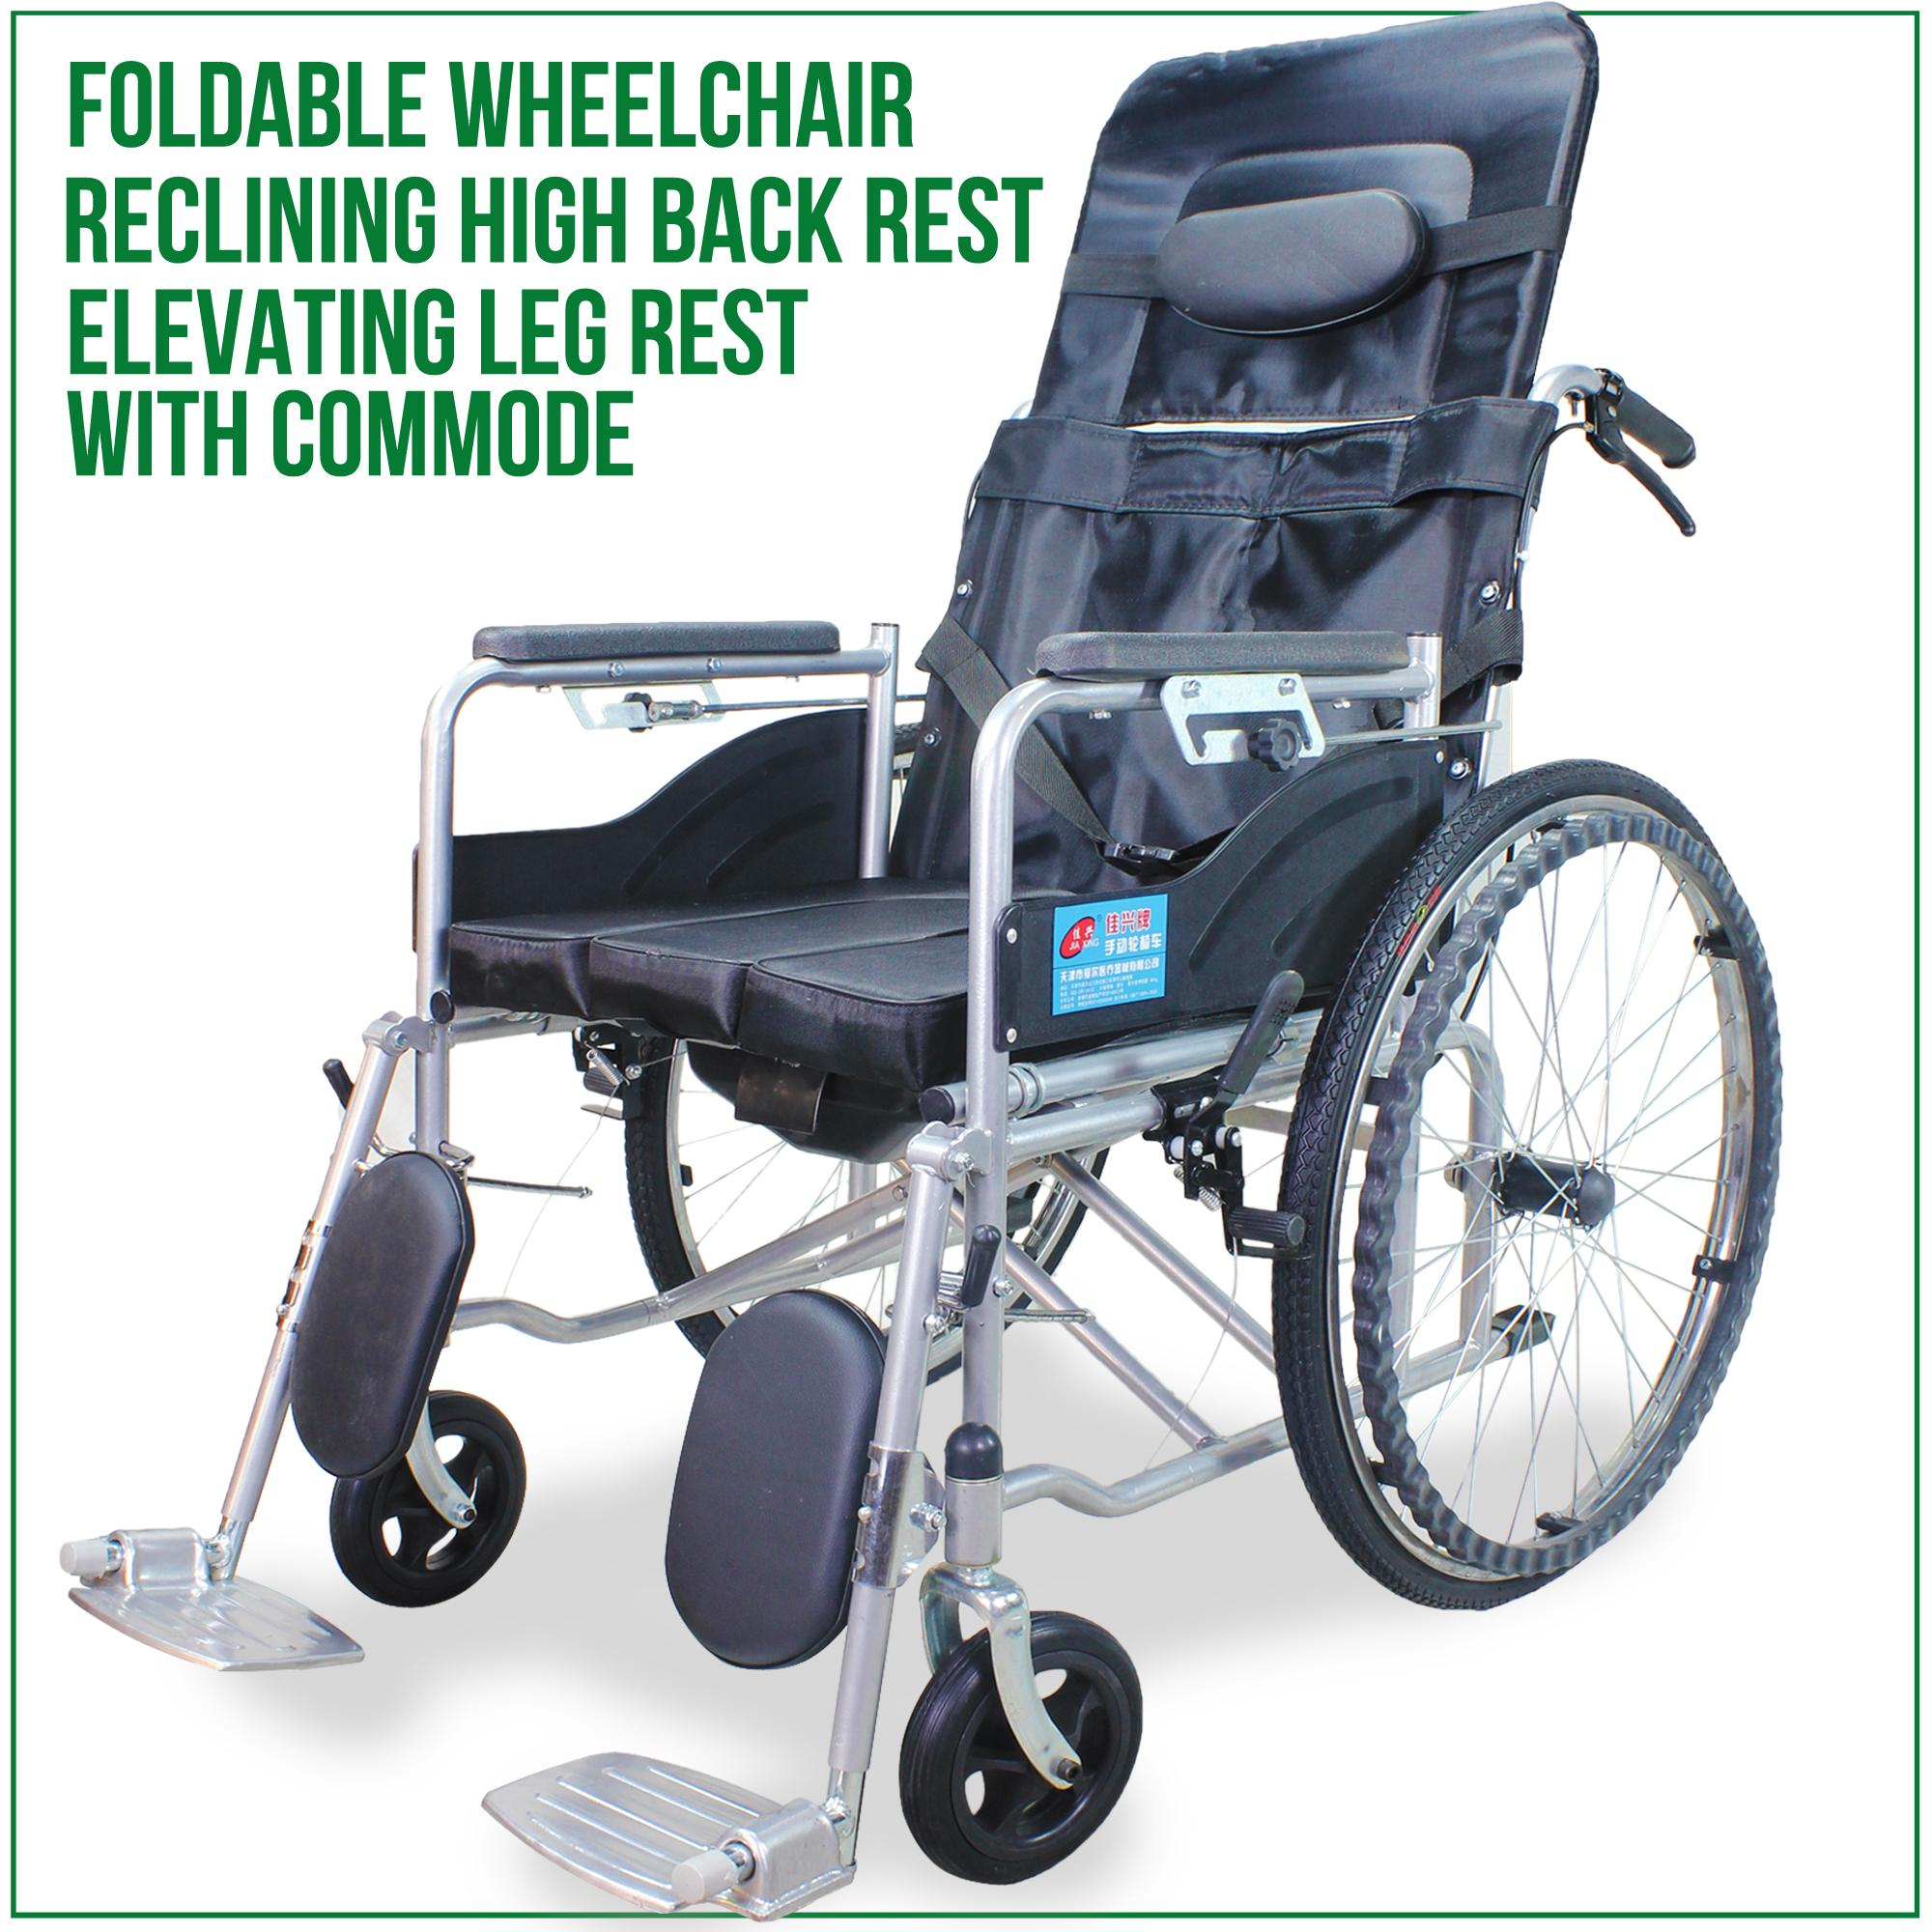 Foldable Wheelchair Reclining High Back Rest Elevating Leg Rest With Commode